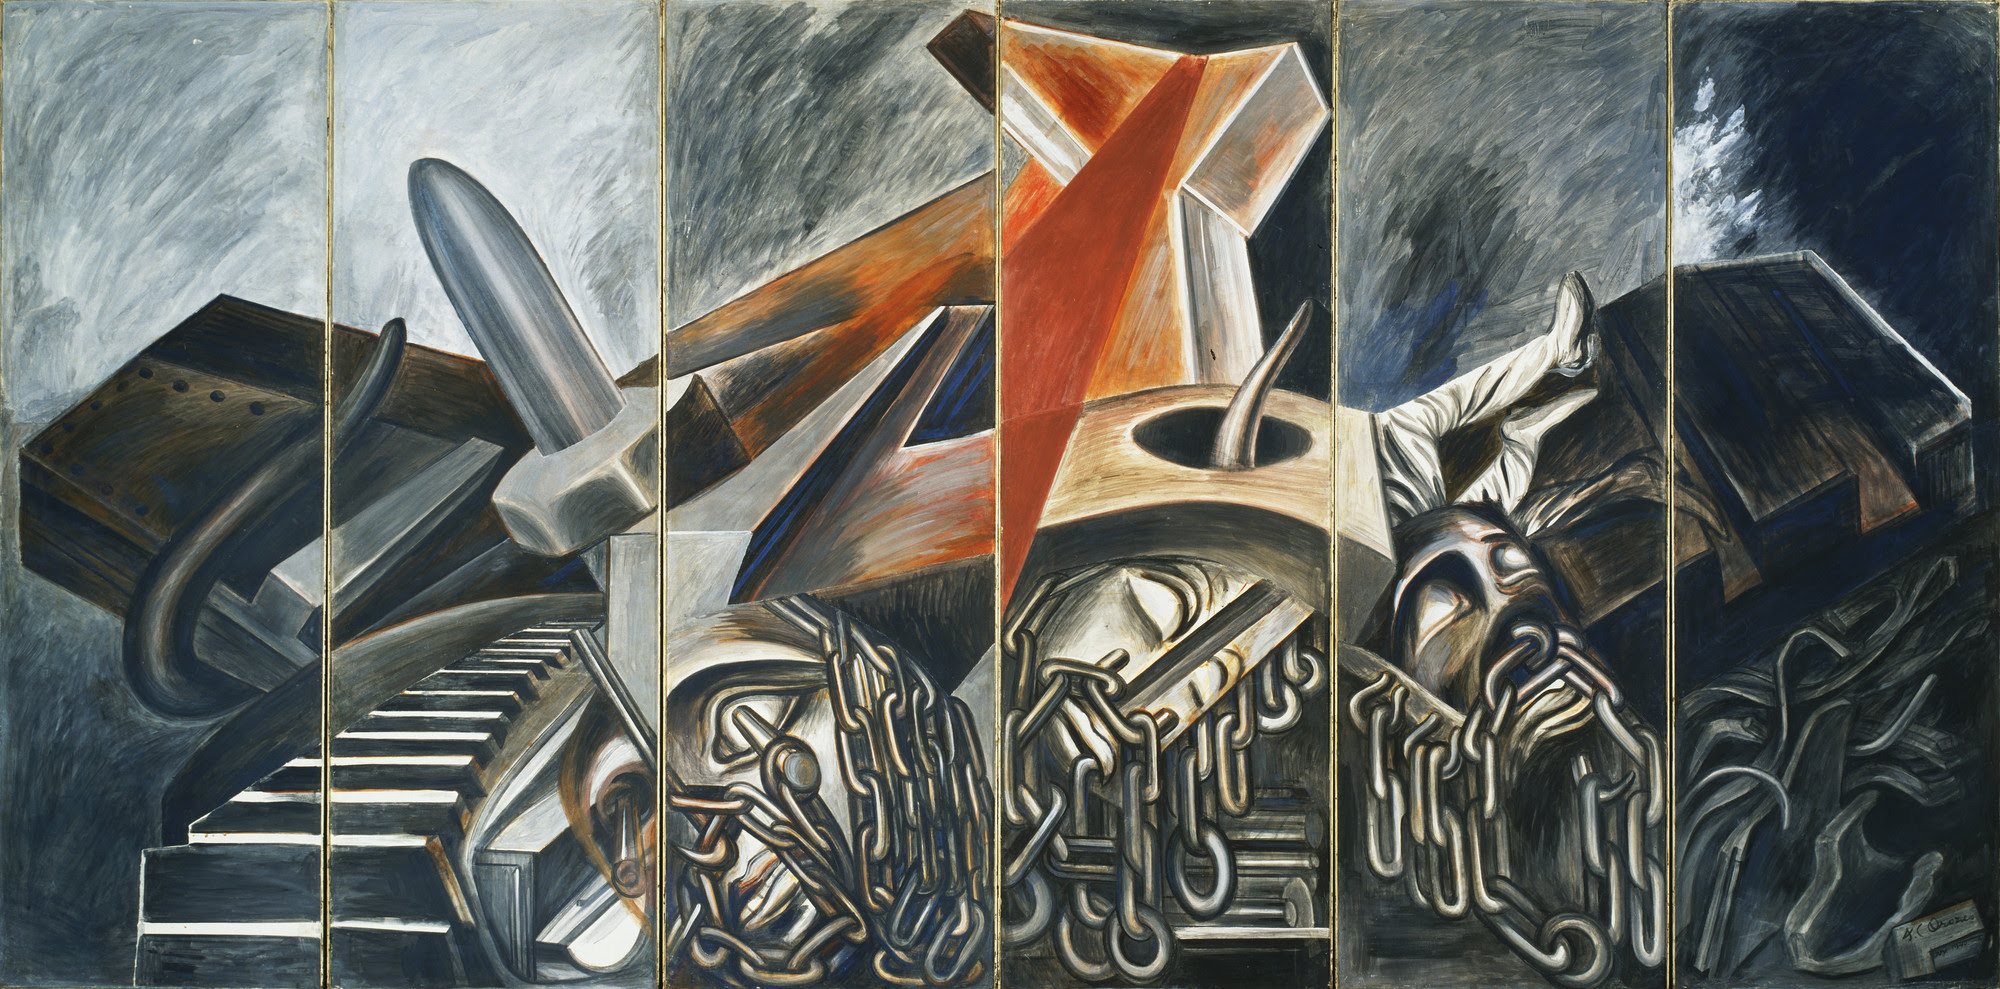 Jose Clemente Orozco Dive Bomber And Tank 1940 Moma